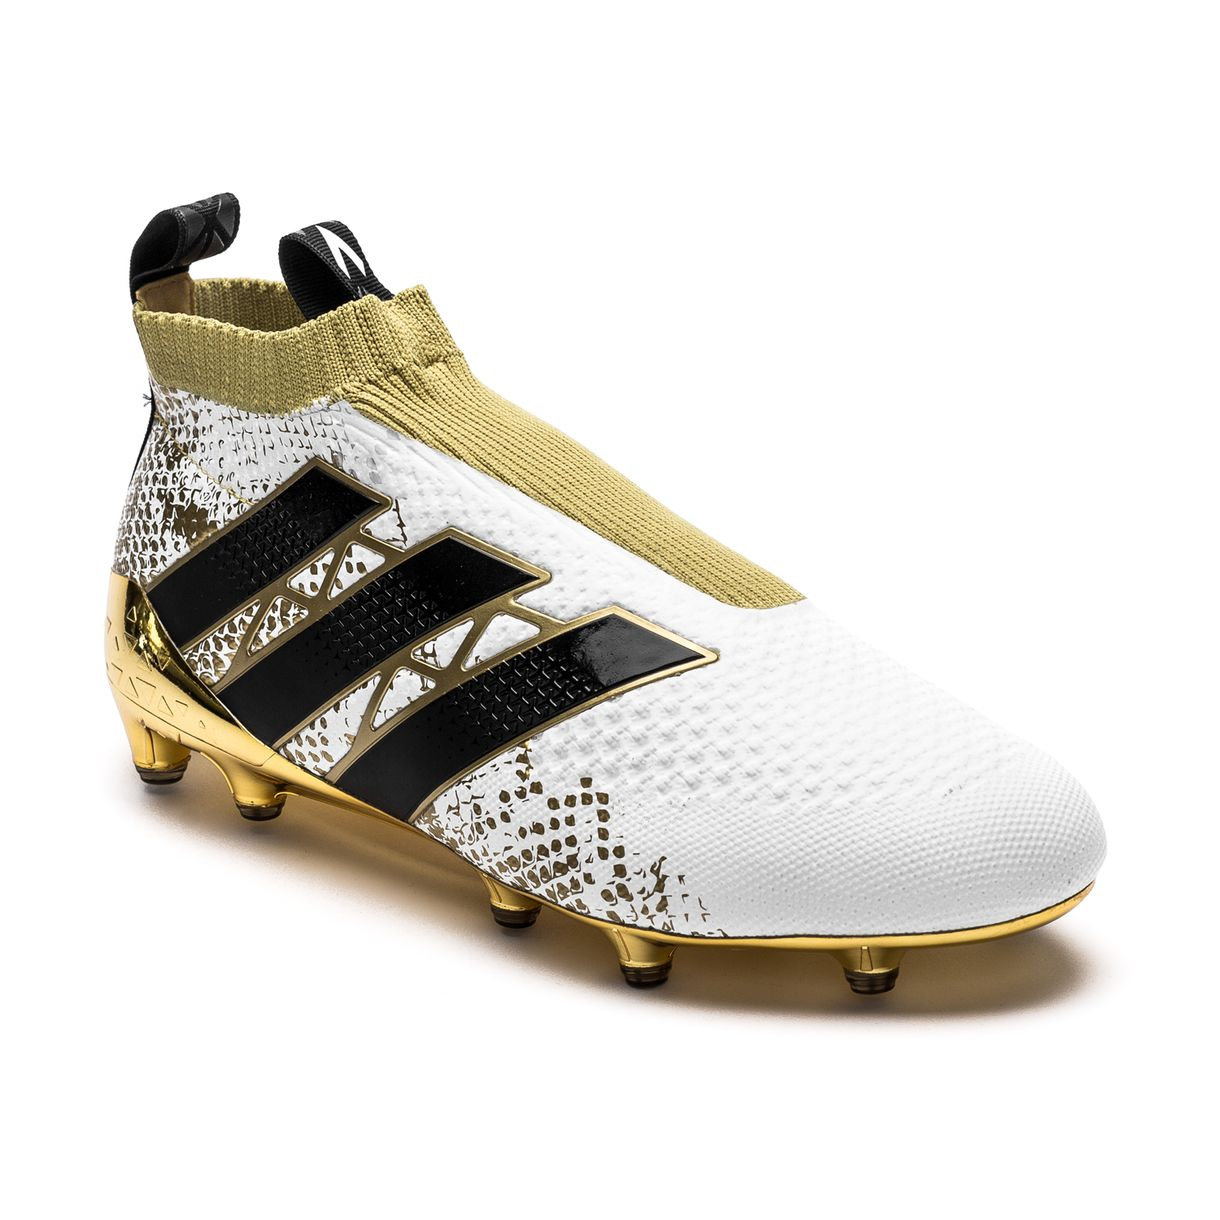 9682a6cdf03 ... Click to enlarge image  adidas ace 16 purecontrol fg ag stellar pack white core black gold metallic j.jpg  ...